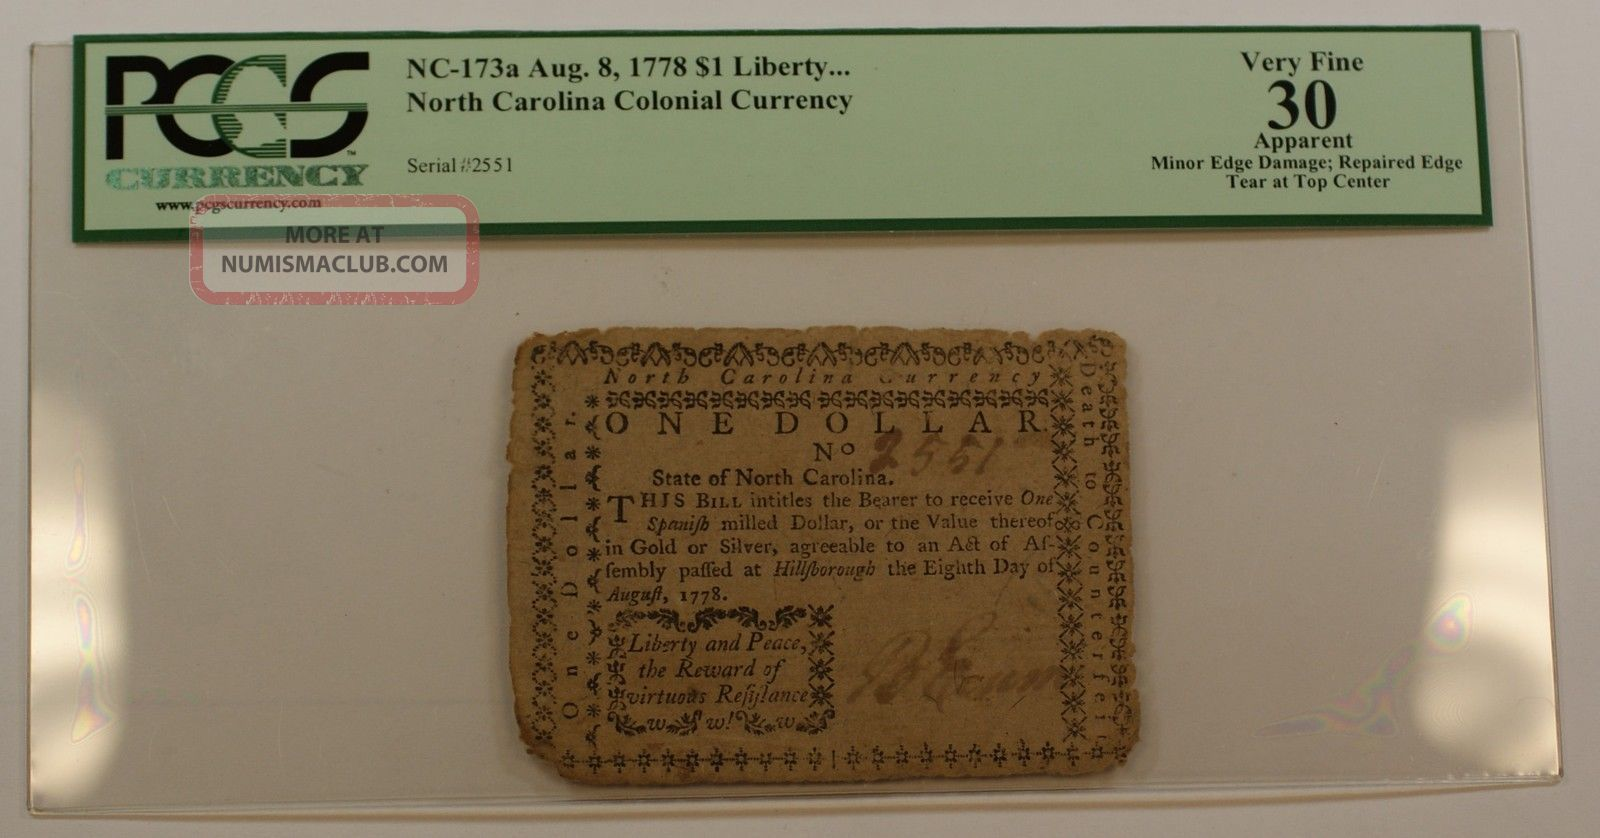 Aug.  8 1778 $1 Liberty Colonial Currency Note Pcgs Vf - 30 Apparent Nc - 173a Paper Money: US photo